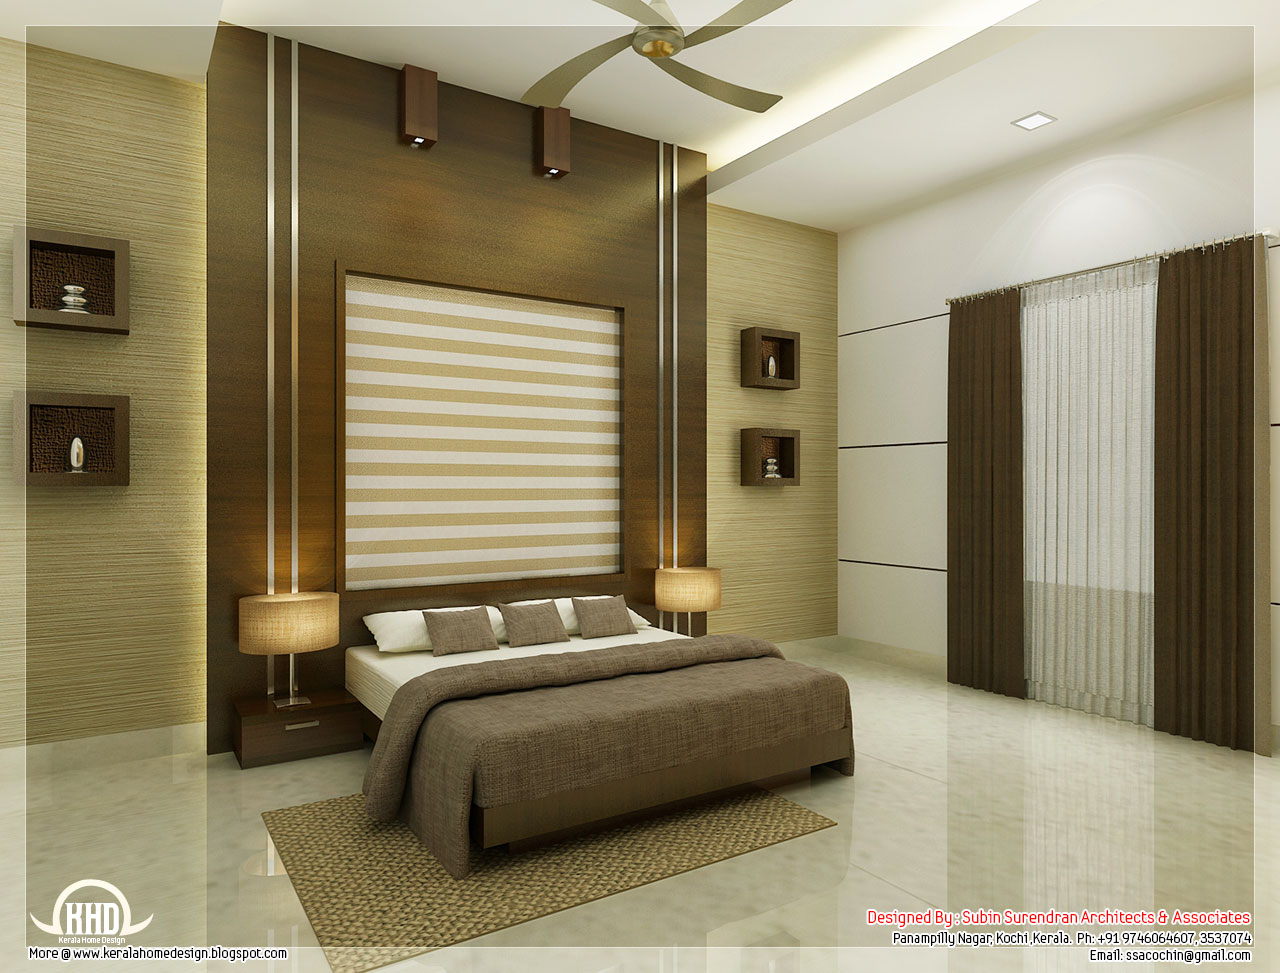 Beautiful bedroom interior designs kerala home design and floor plans Interior design ideas for kerala houses